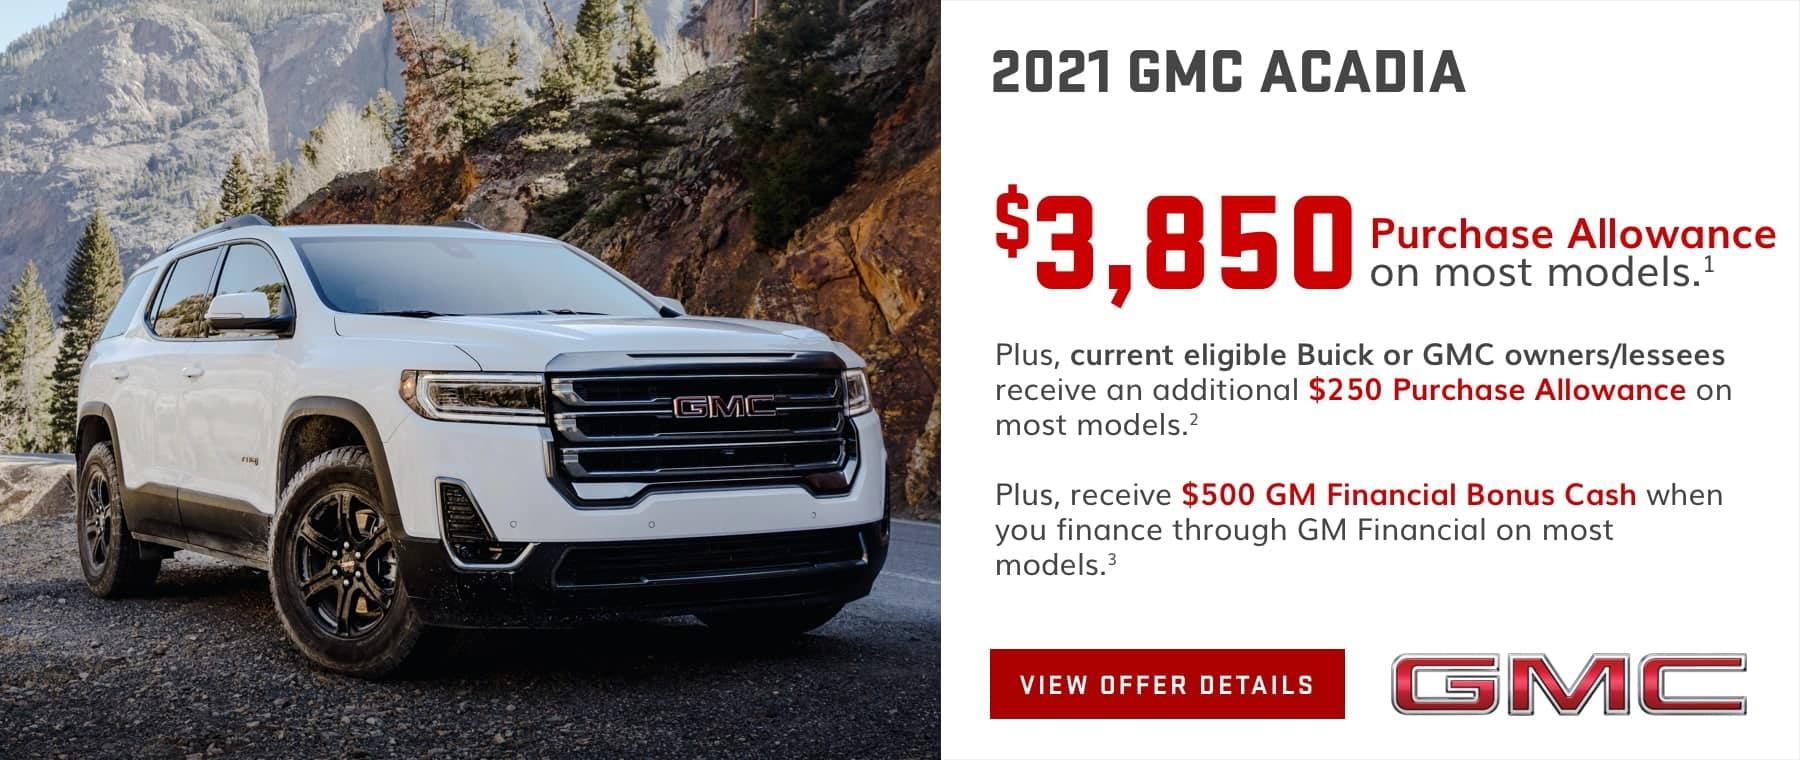 $3,850 Purchase Allowance on most models.1 Plus, current eligible Buick or GMC owners/lessees receive an additional $250 Purchase Allowance on most models.2 Plus, receive $500 GM Financial Bonus Cash when you finance through GM Financial on most models.3